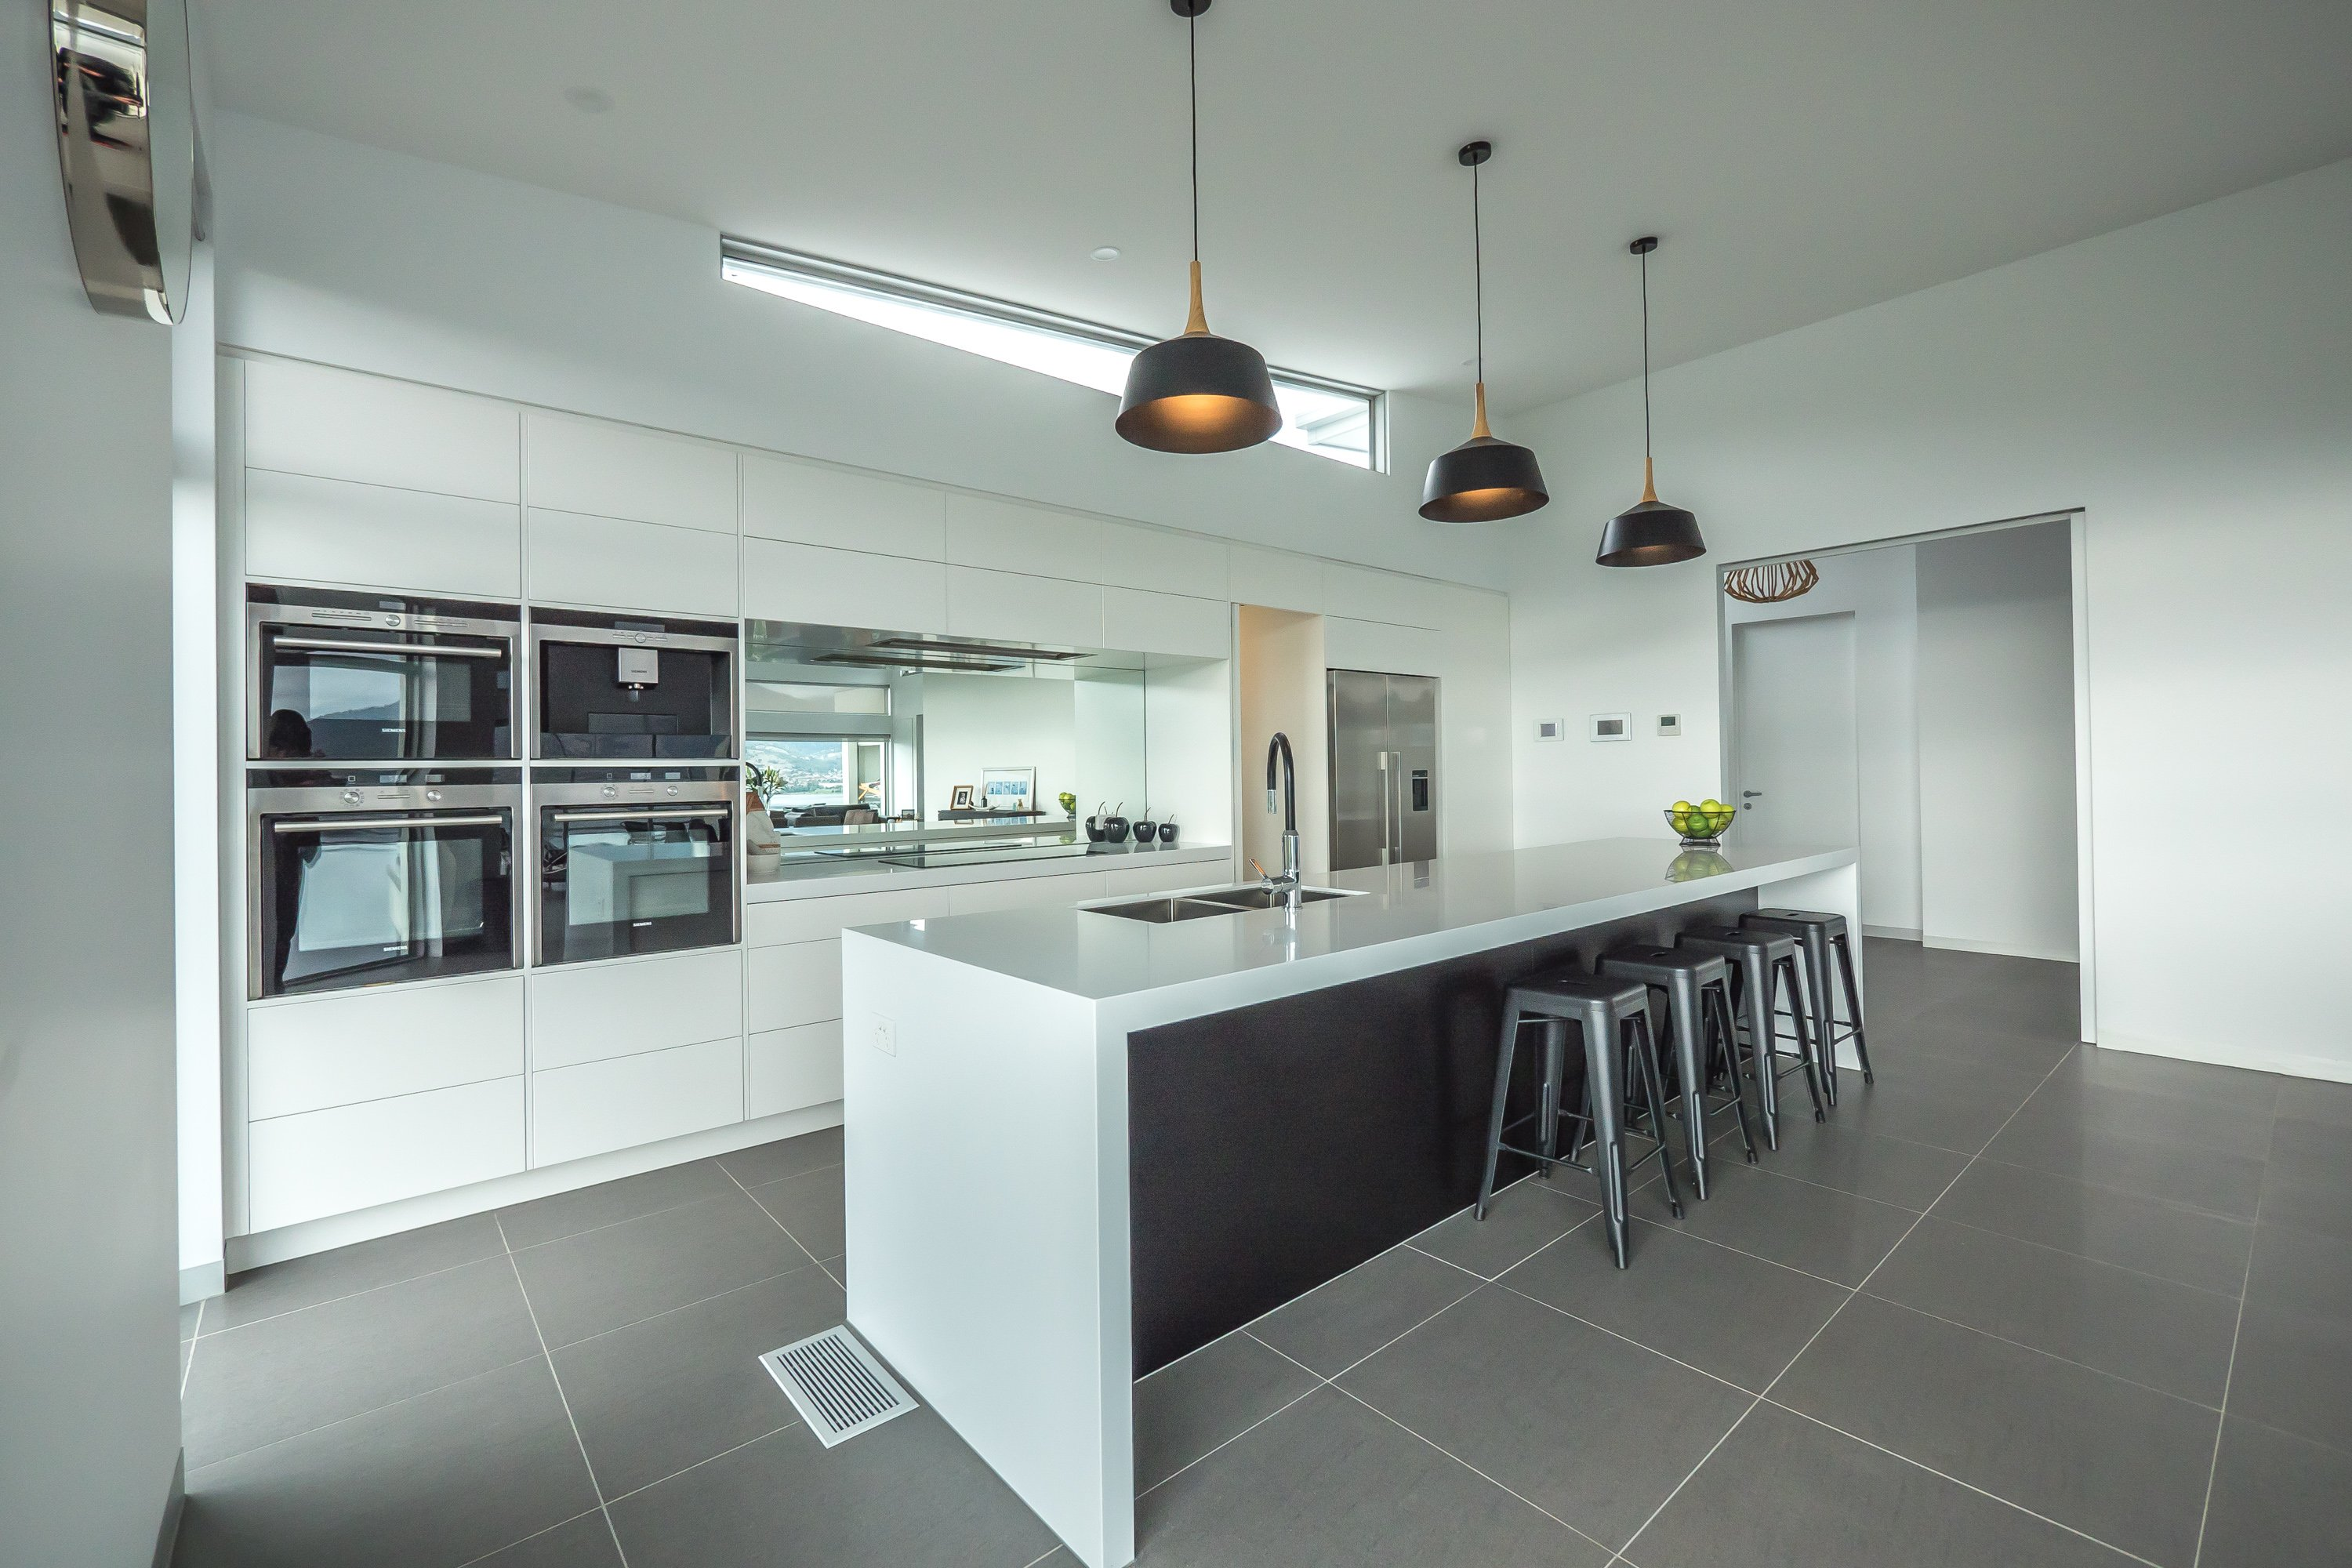 wd bryan joinery house luxurious kitchen